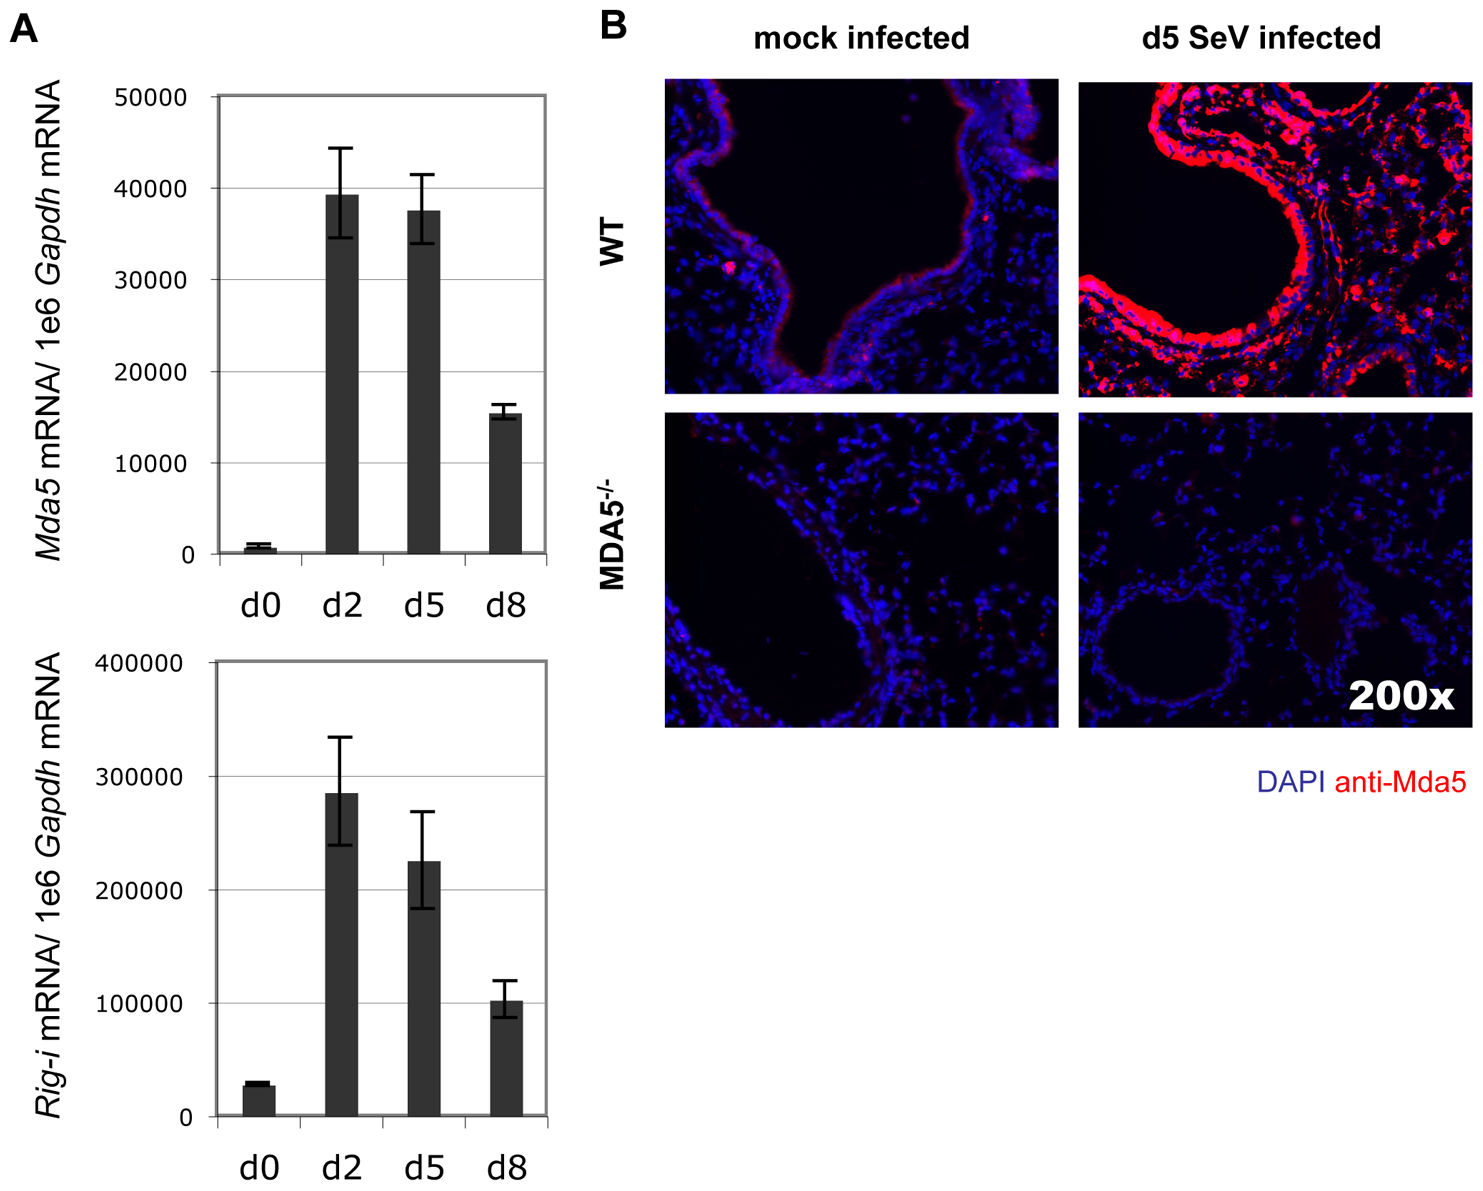 Infection with SeV results in induction of antiviral sensor expression.